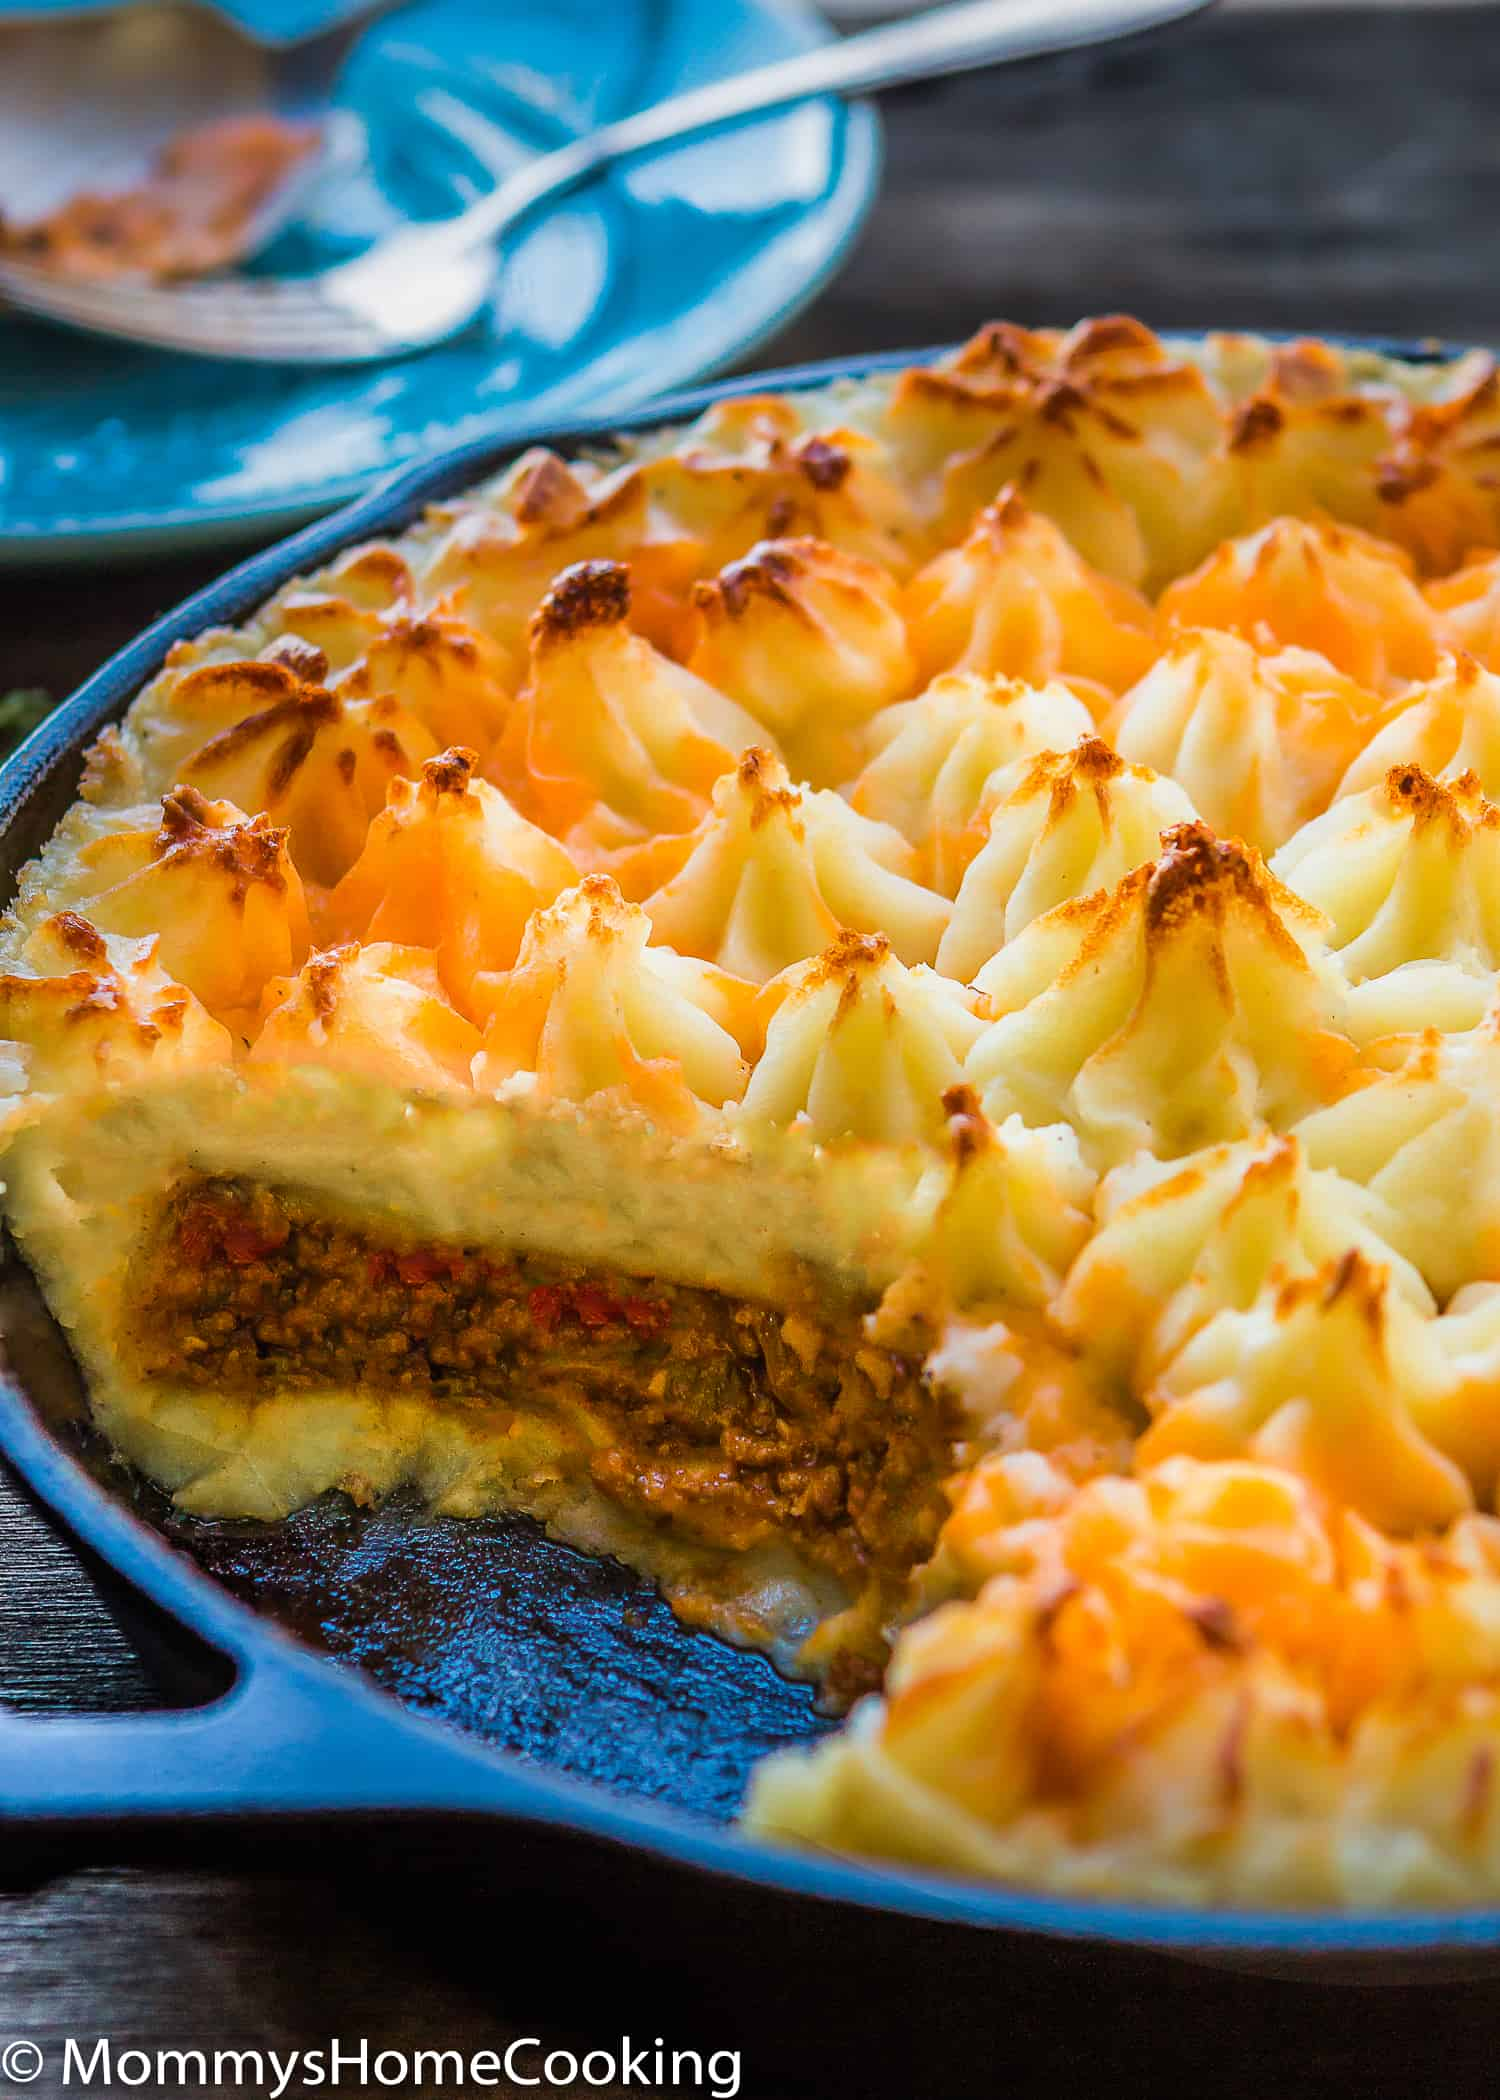 This Easy Shepherd's Pie recipe is a complete, comforting, and scrumptious meal full of flavor! Made from scratch with Parmesan mashed potatoes and baked to perfection. https://mommyshomecooking.com